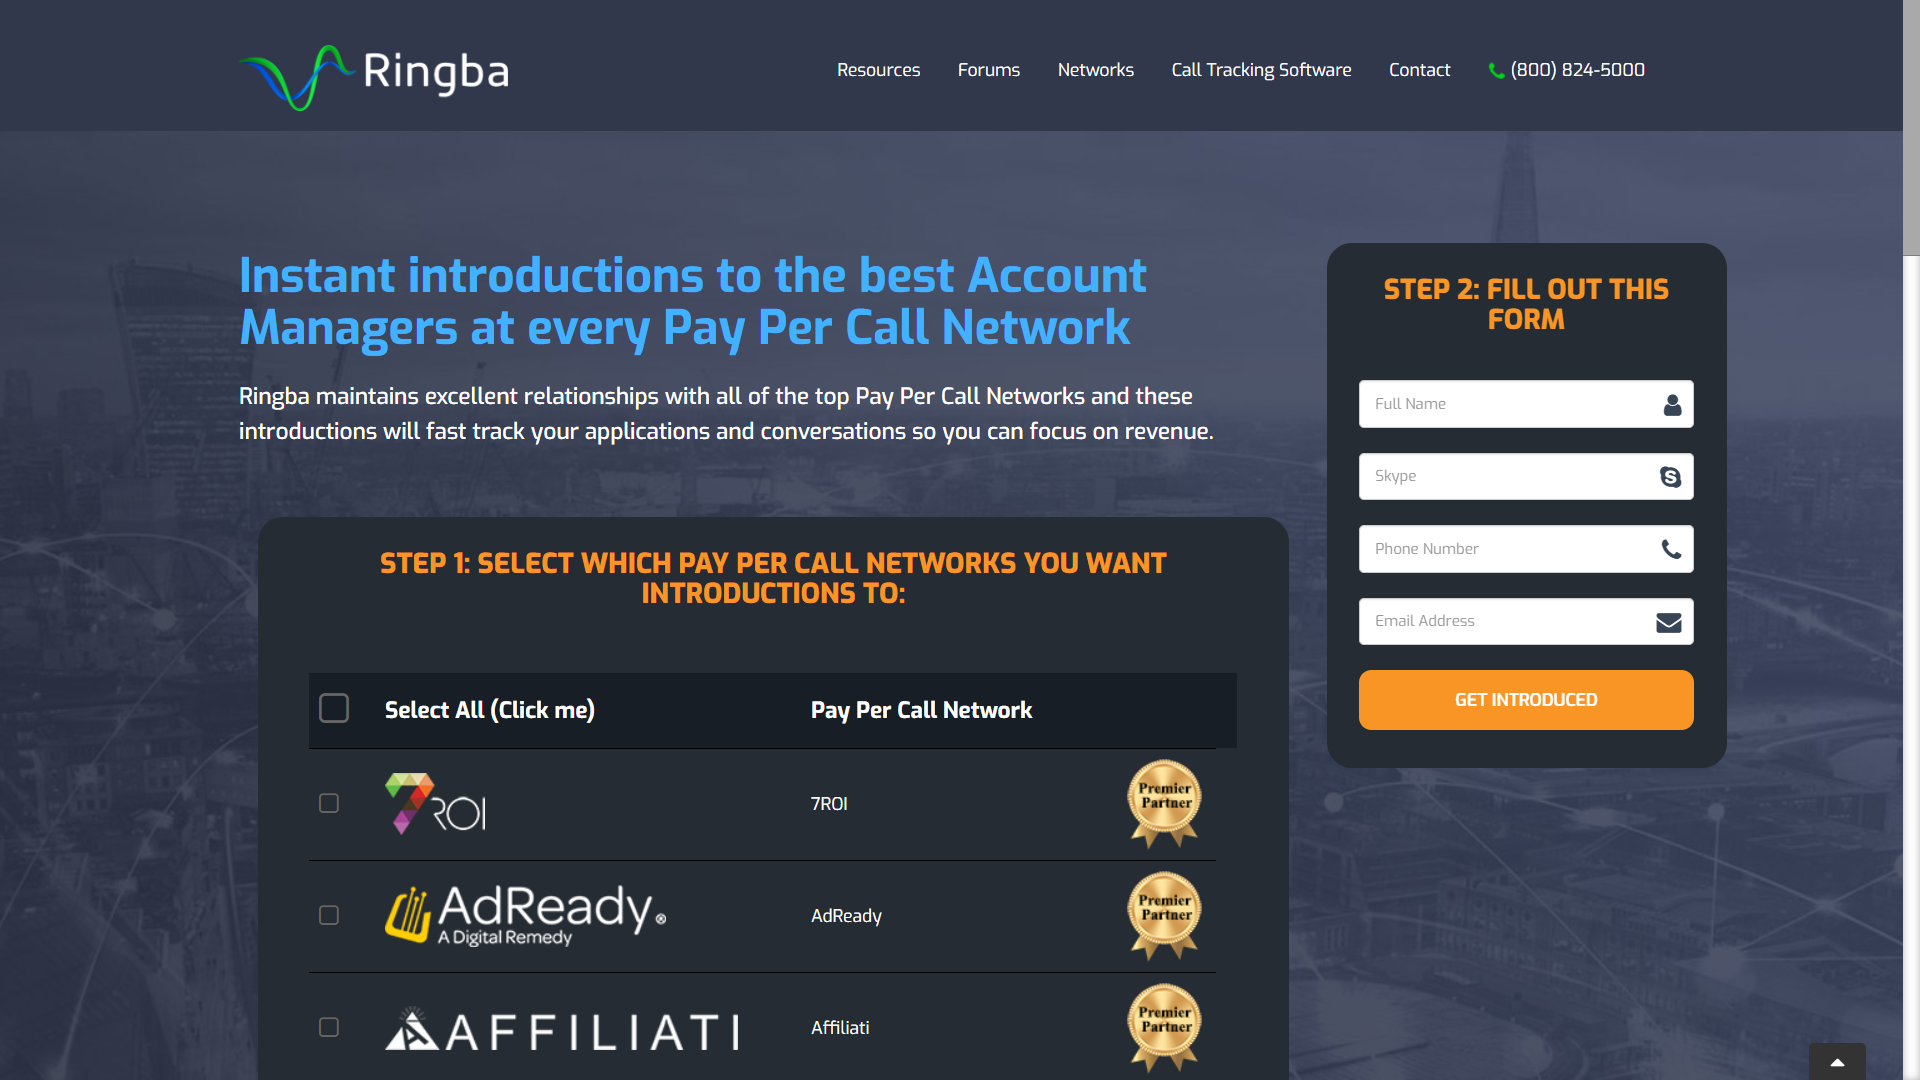 Ringba Introductions to Pay Per Call Networks